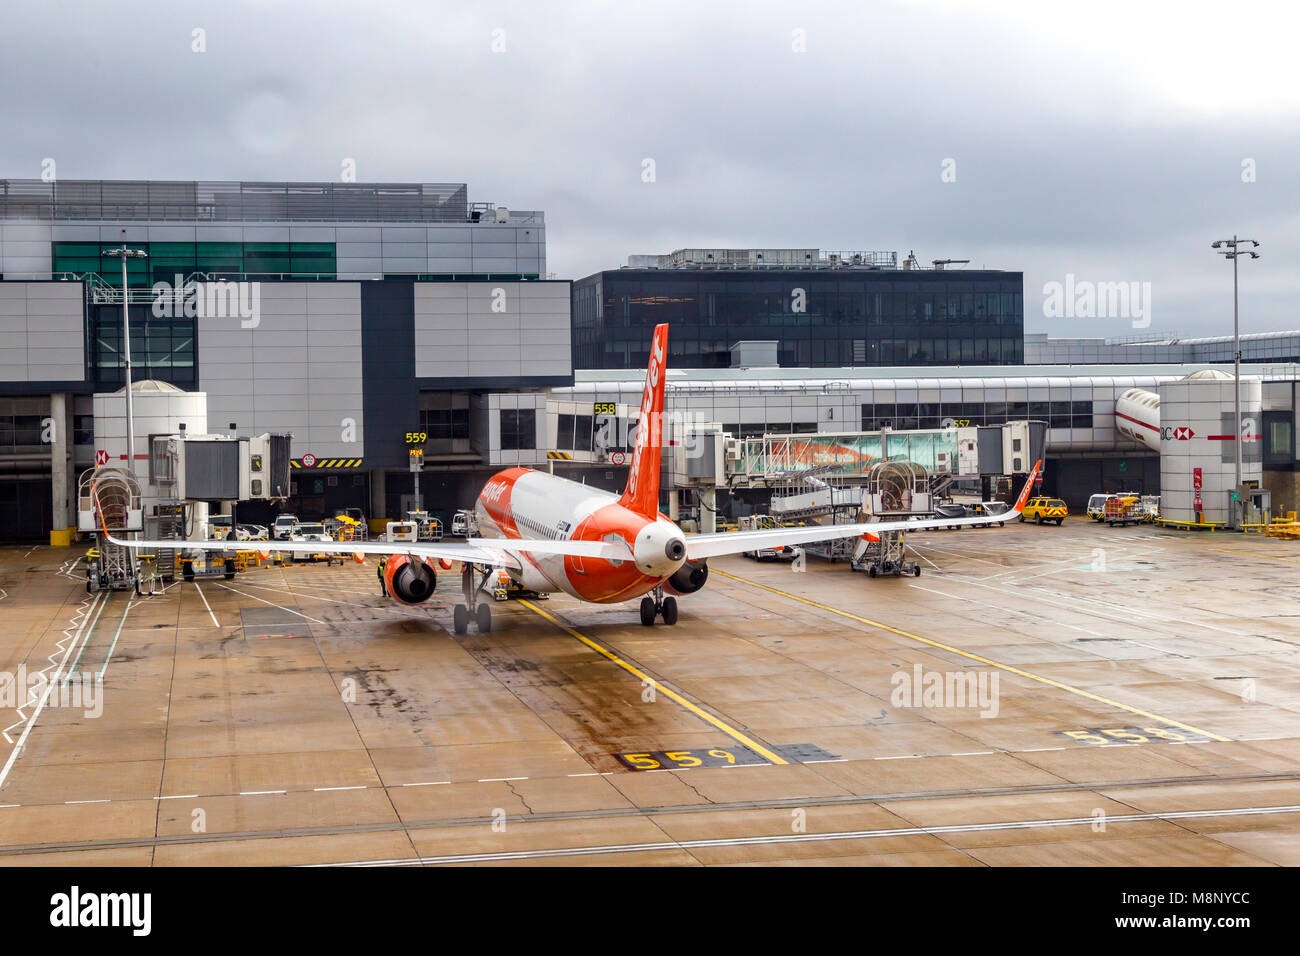 Looking out plane window as it taxi's out at Gatwick airport on a early morning flight to Las Vegas. - Stock Image